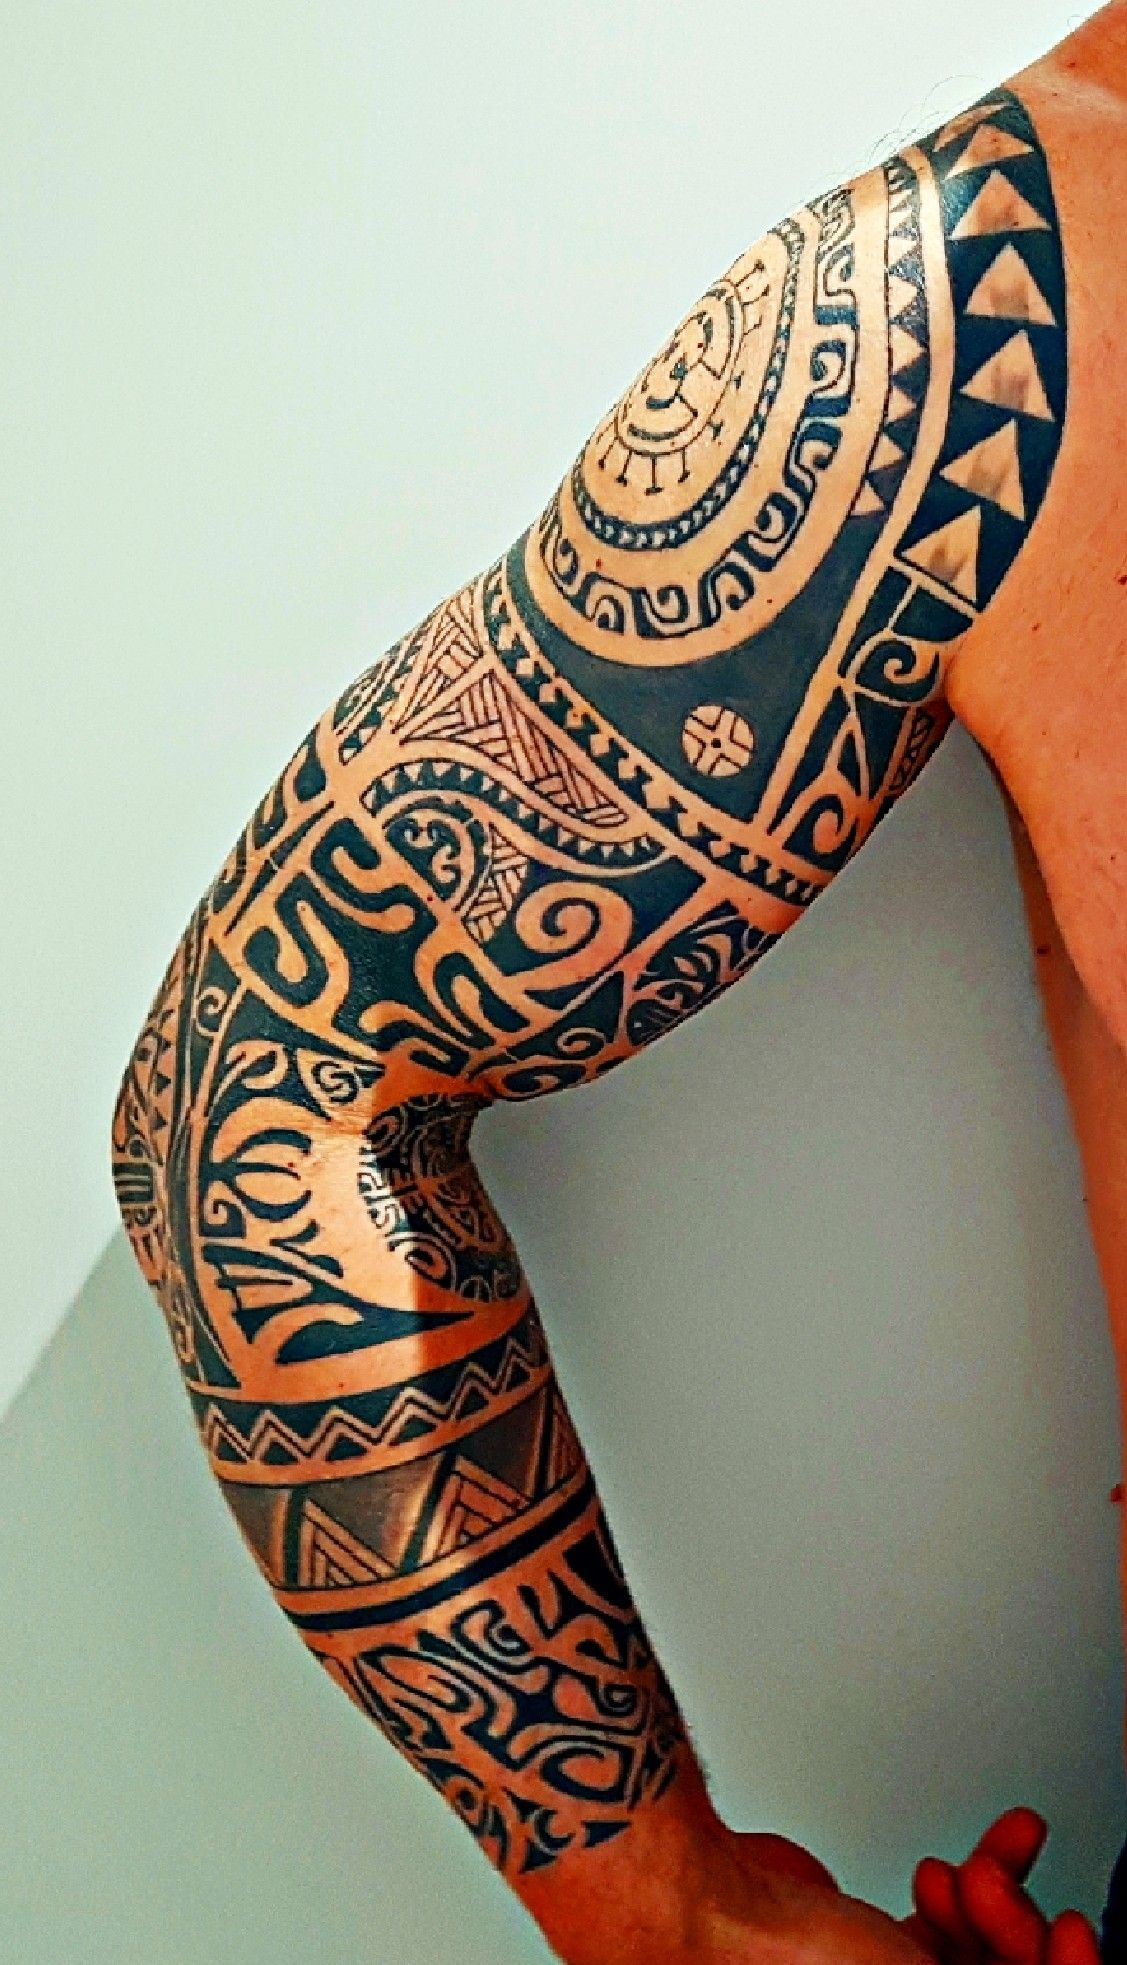 Body Art World Tattoos Maori Tattoo Art And Traditional: Tatuagem, Tatuagem Masculina E